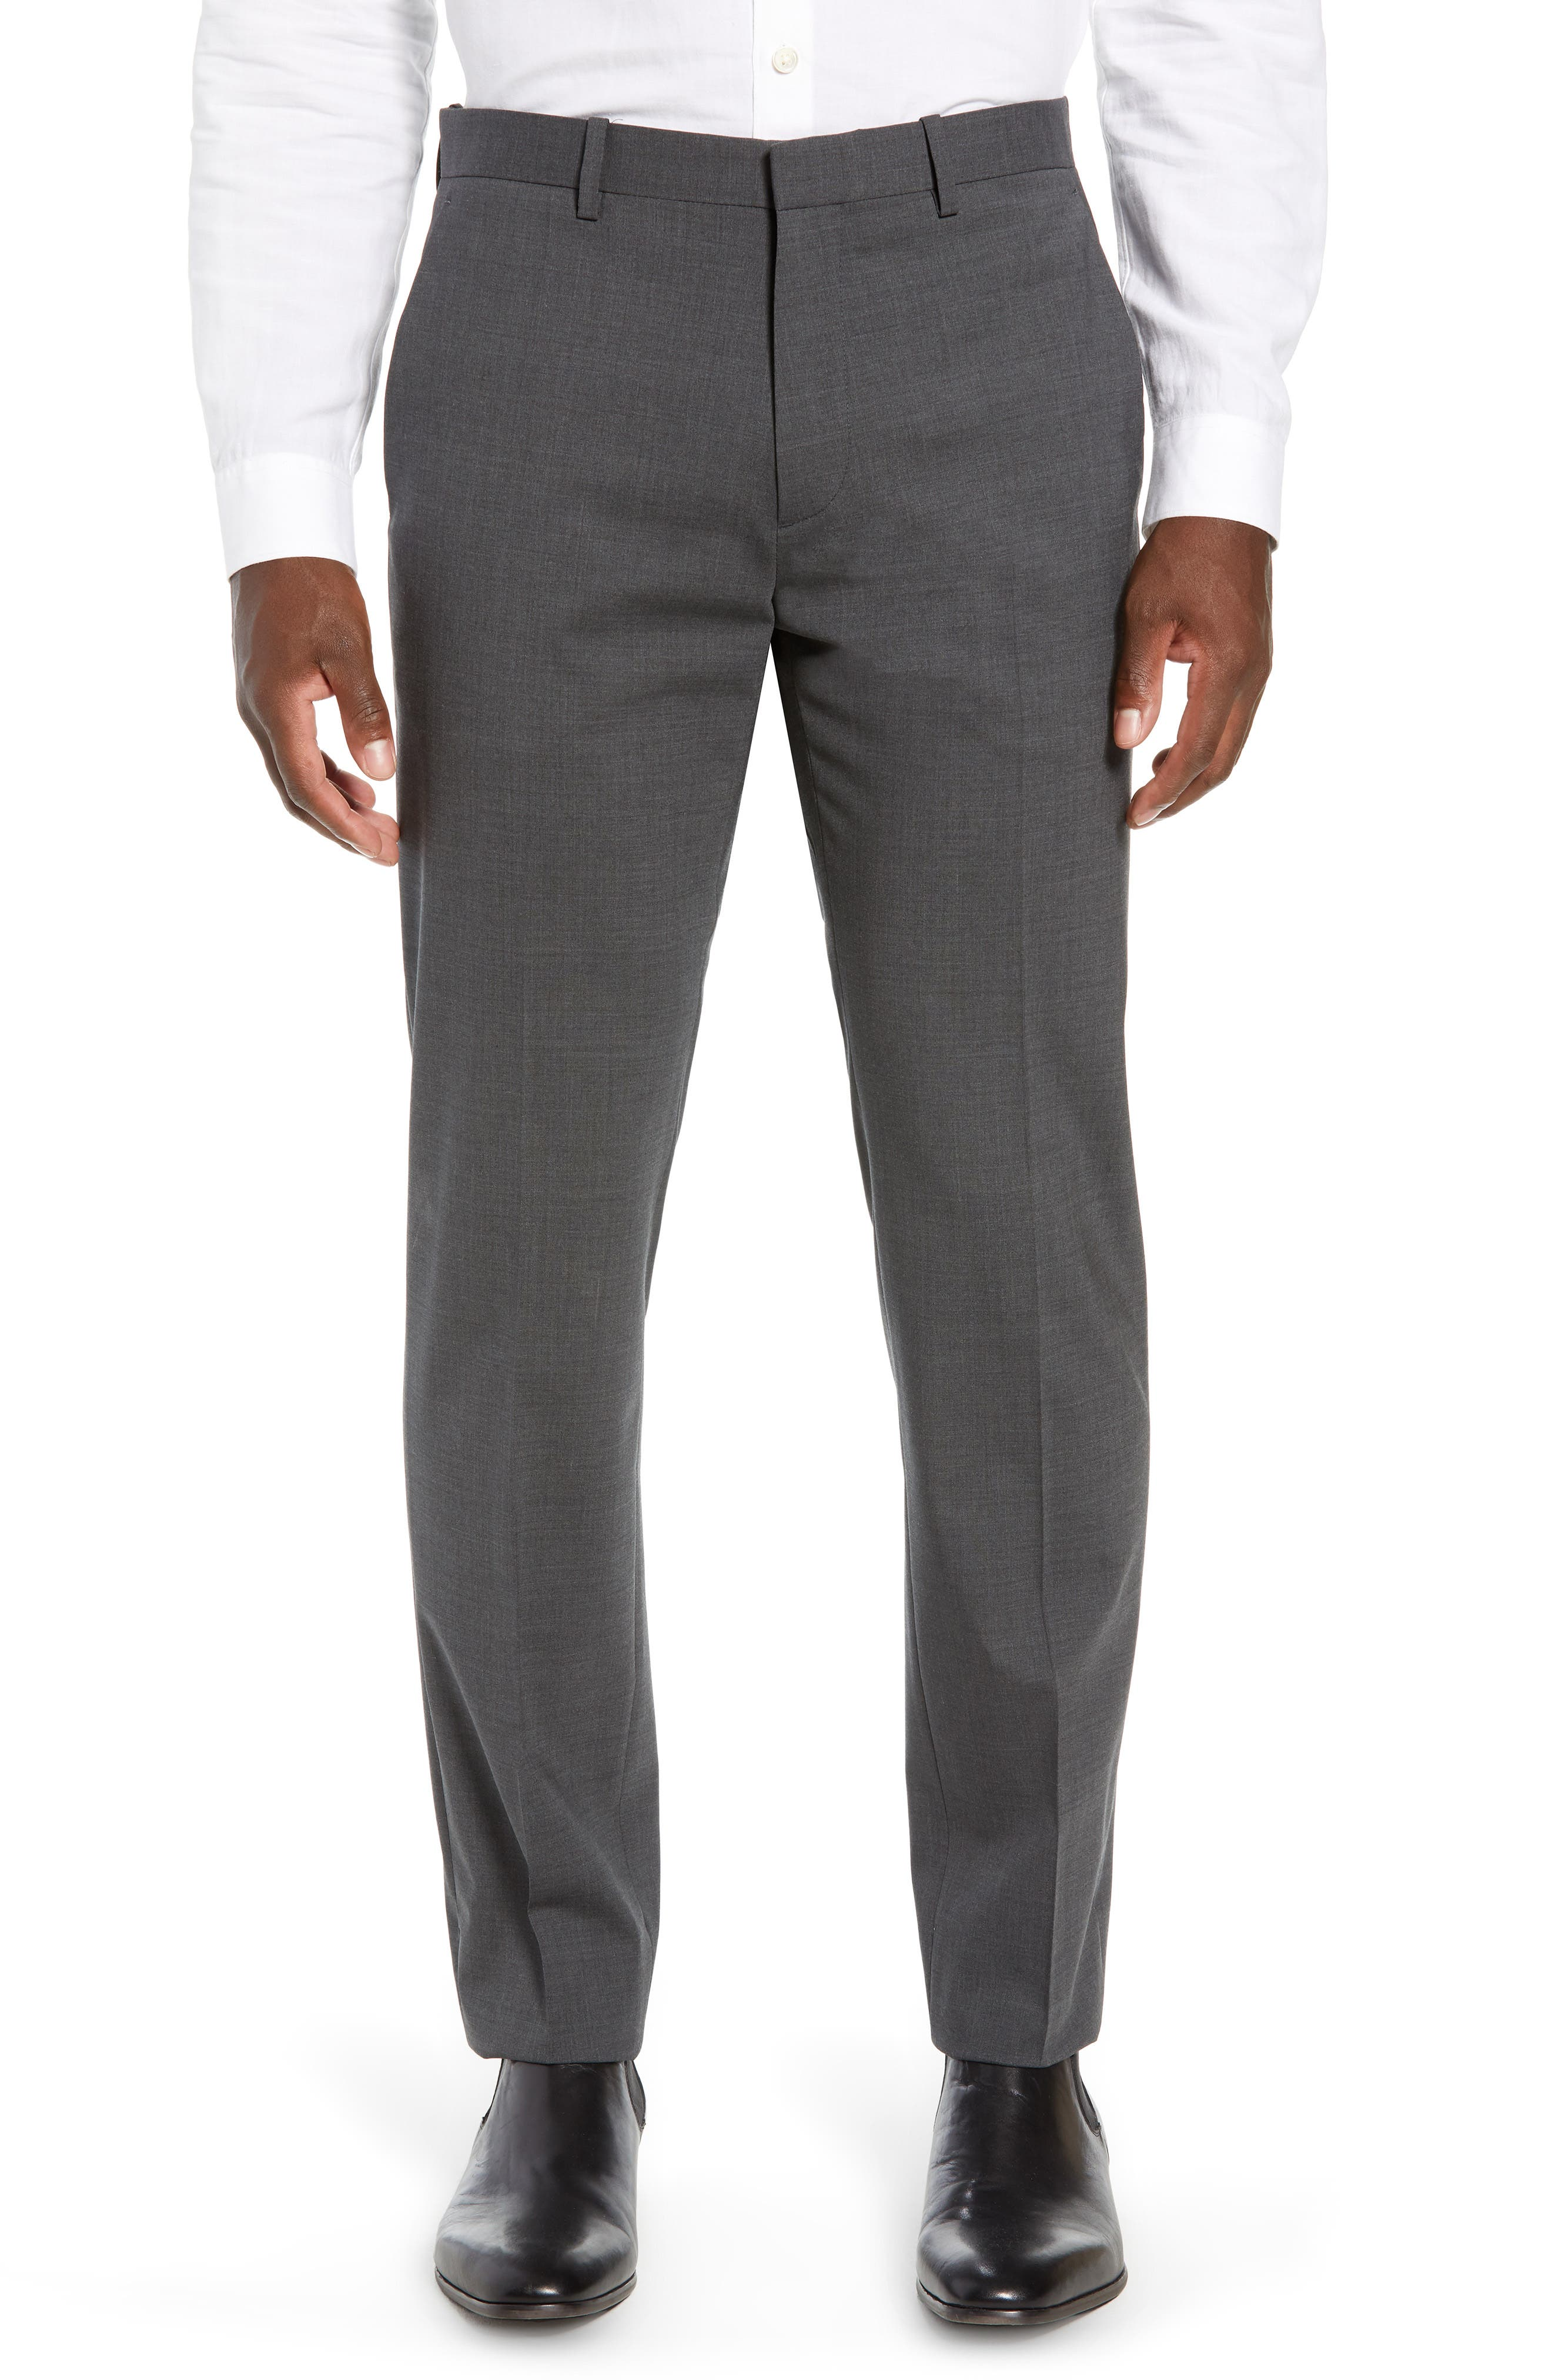 Mayer New Tailor 2 Wool Trousers,                         Main,                         color, CHARCOAL